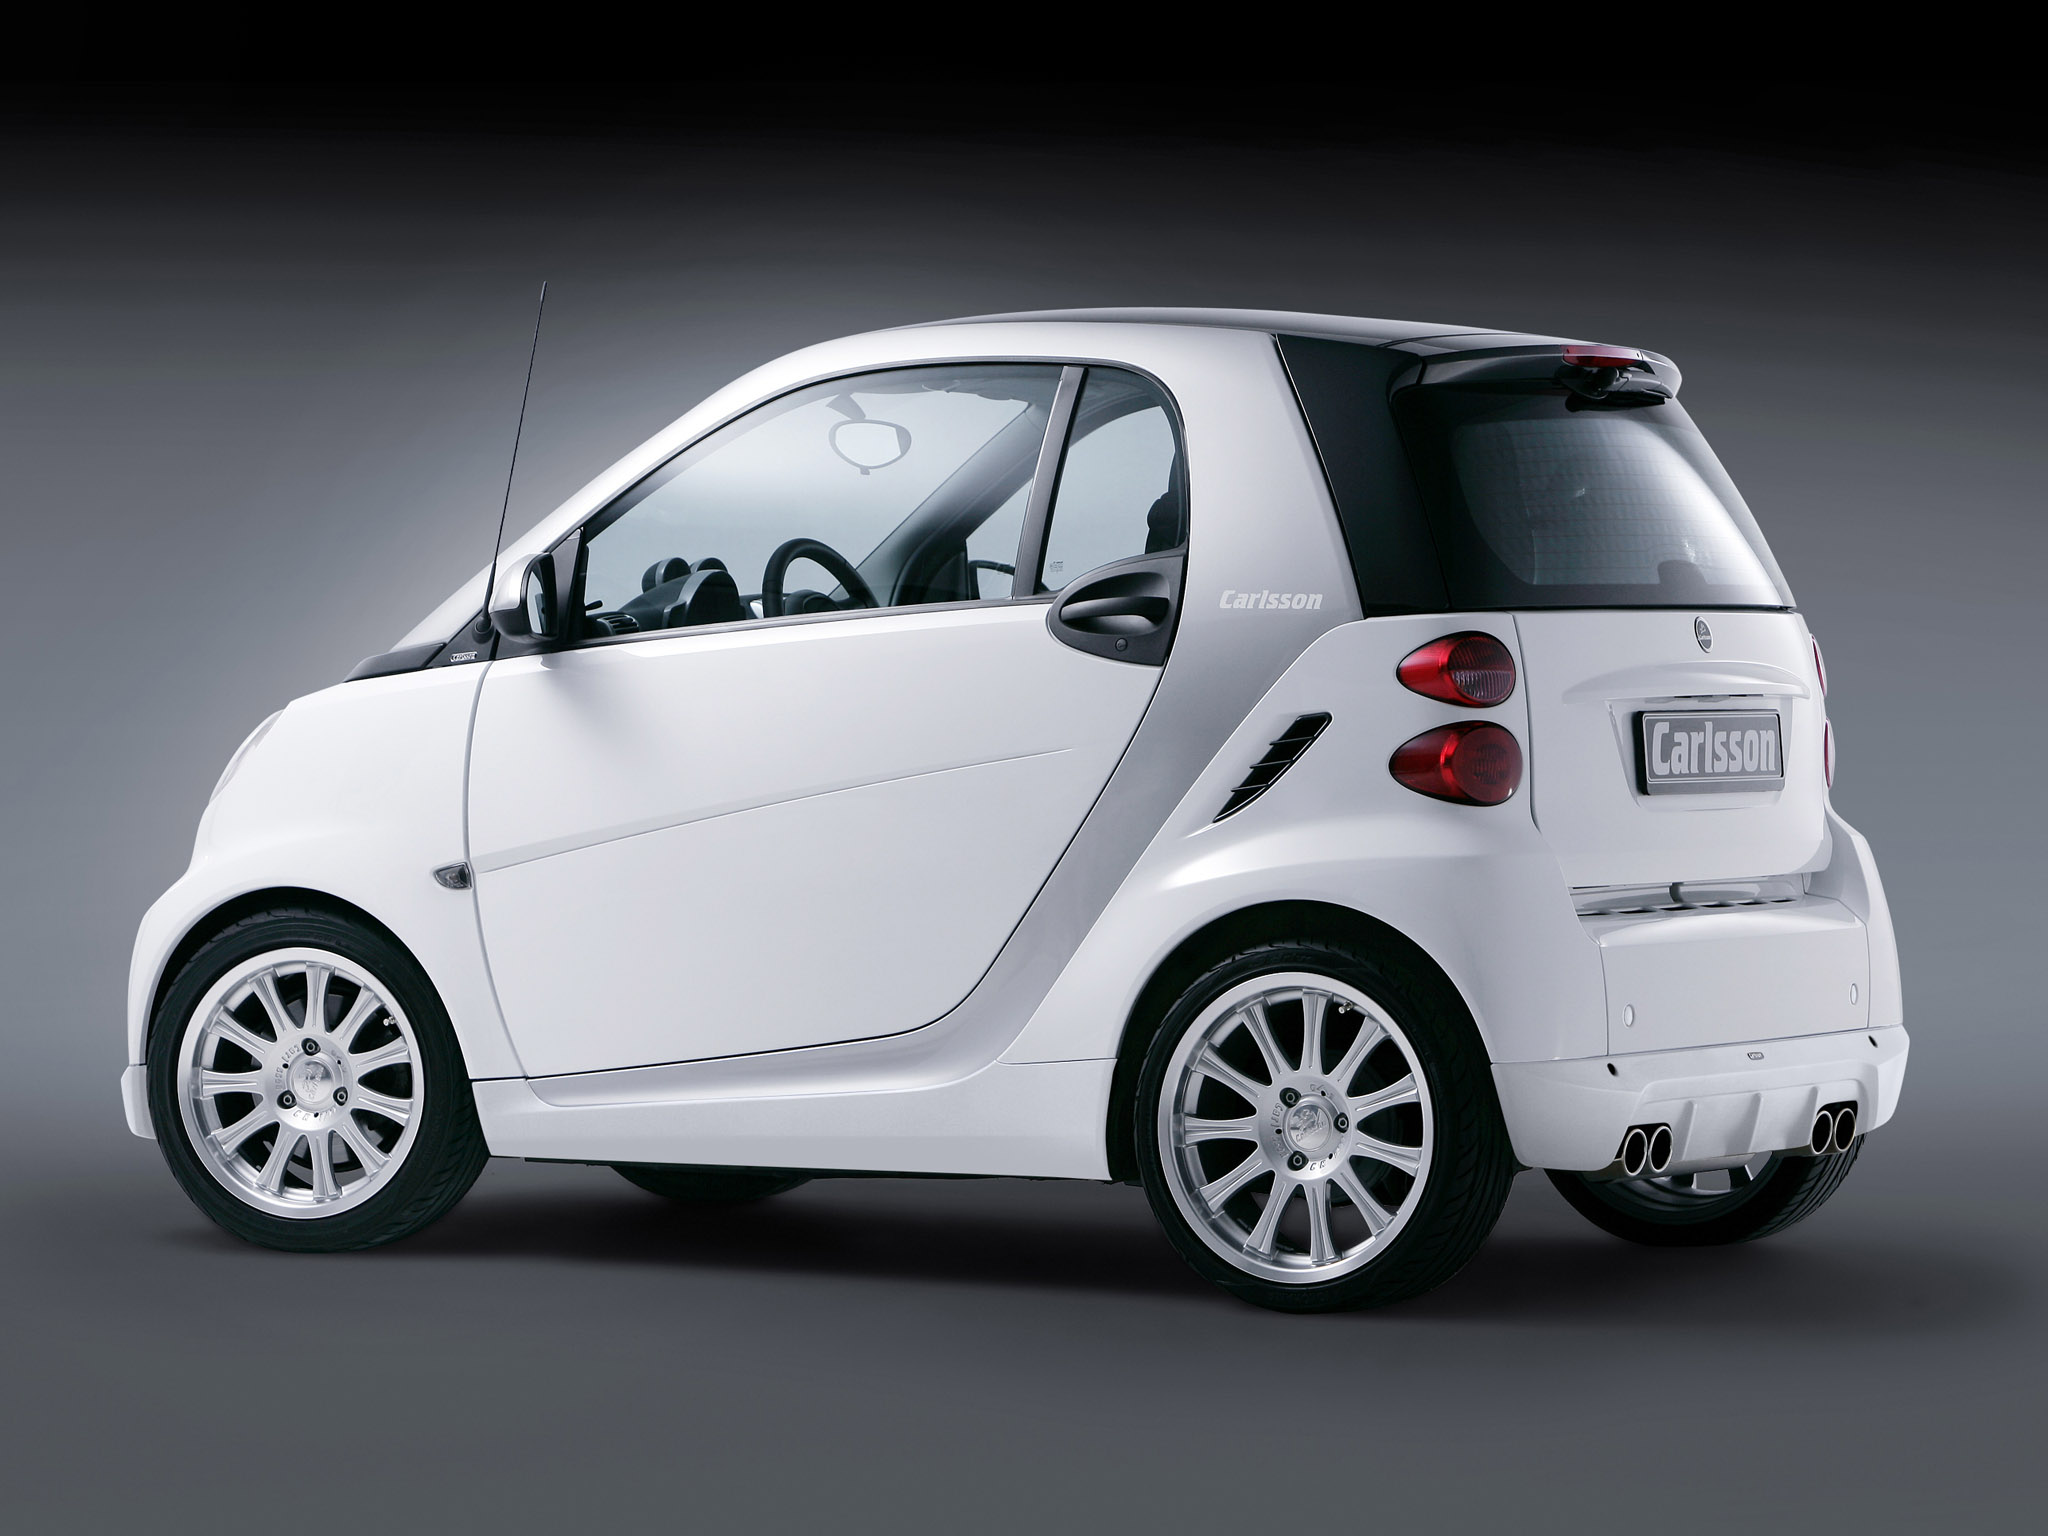 carlsson smart fortwo 2007 carlsson smart fortwo 2007 photo 11 car in pictures car photo gallery. Black Bedroom Furniture Sets. Home Design Ideas